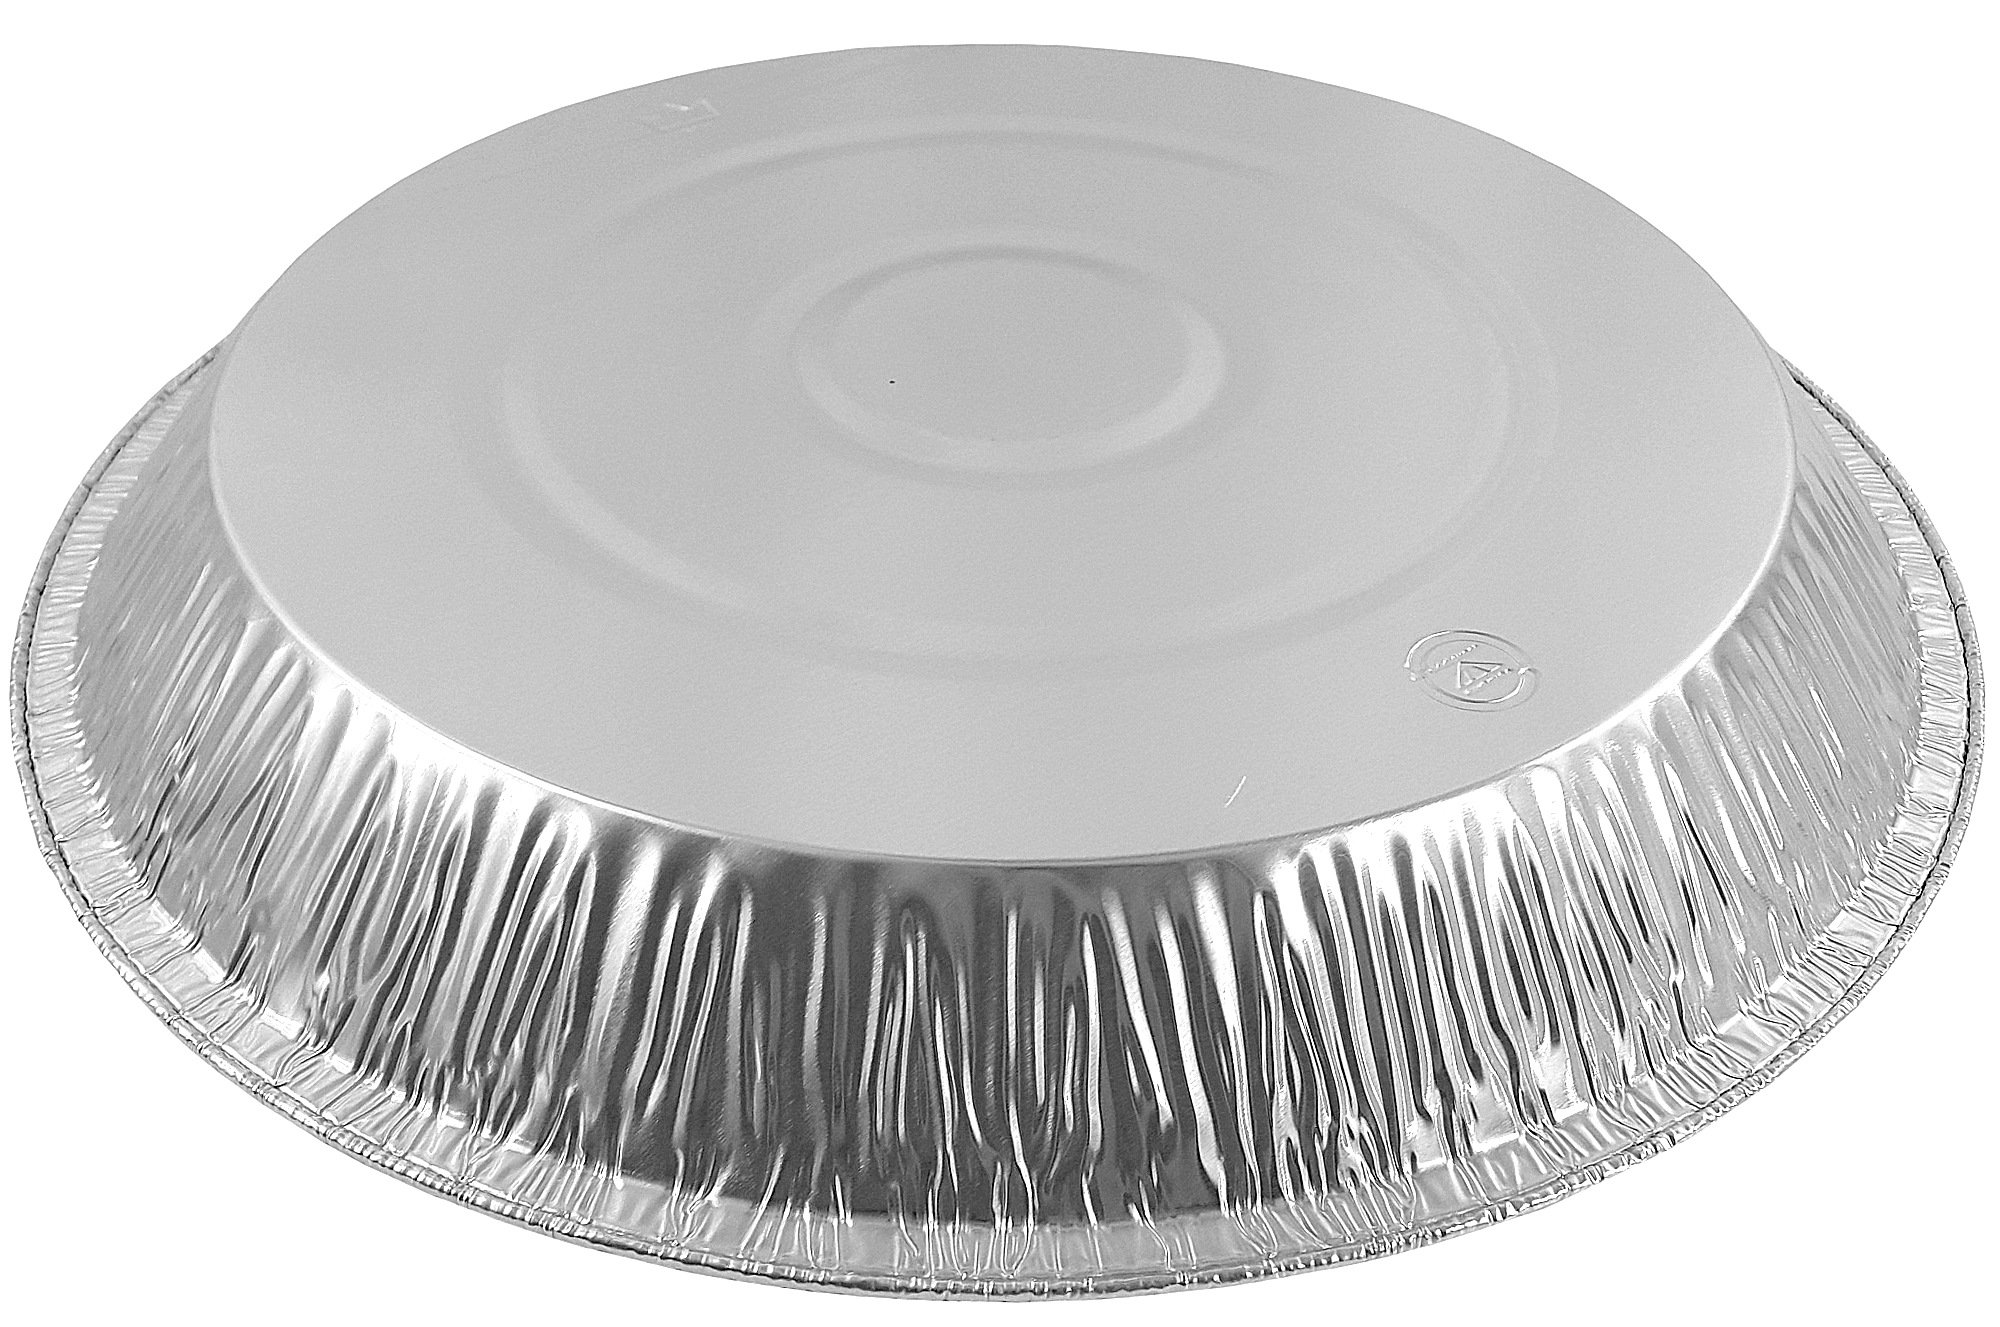 Pactogo 12'' Aluminum Foil Pie Pan Extra-Deep Disposable Tin Plates (Pack of 25) by PACTOGO (Image #6)